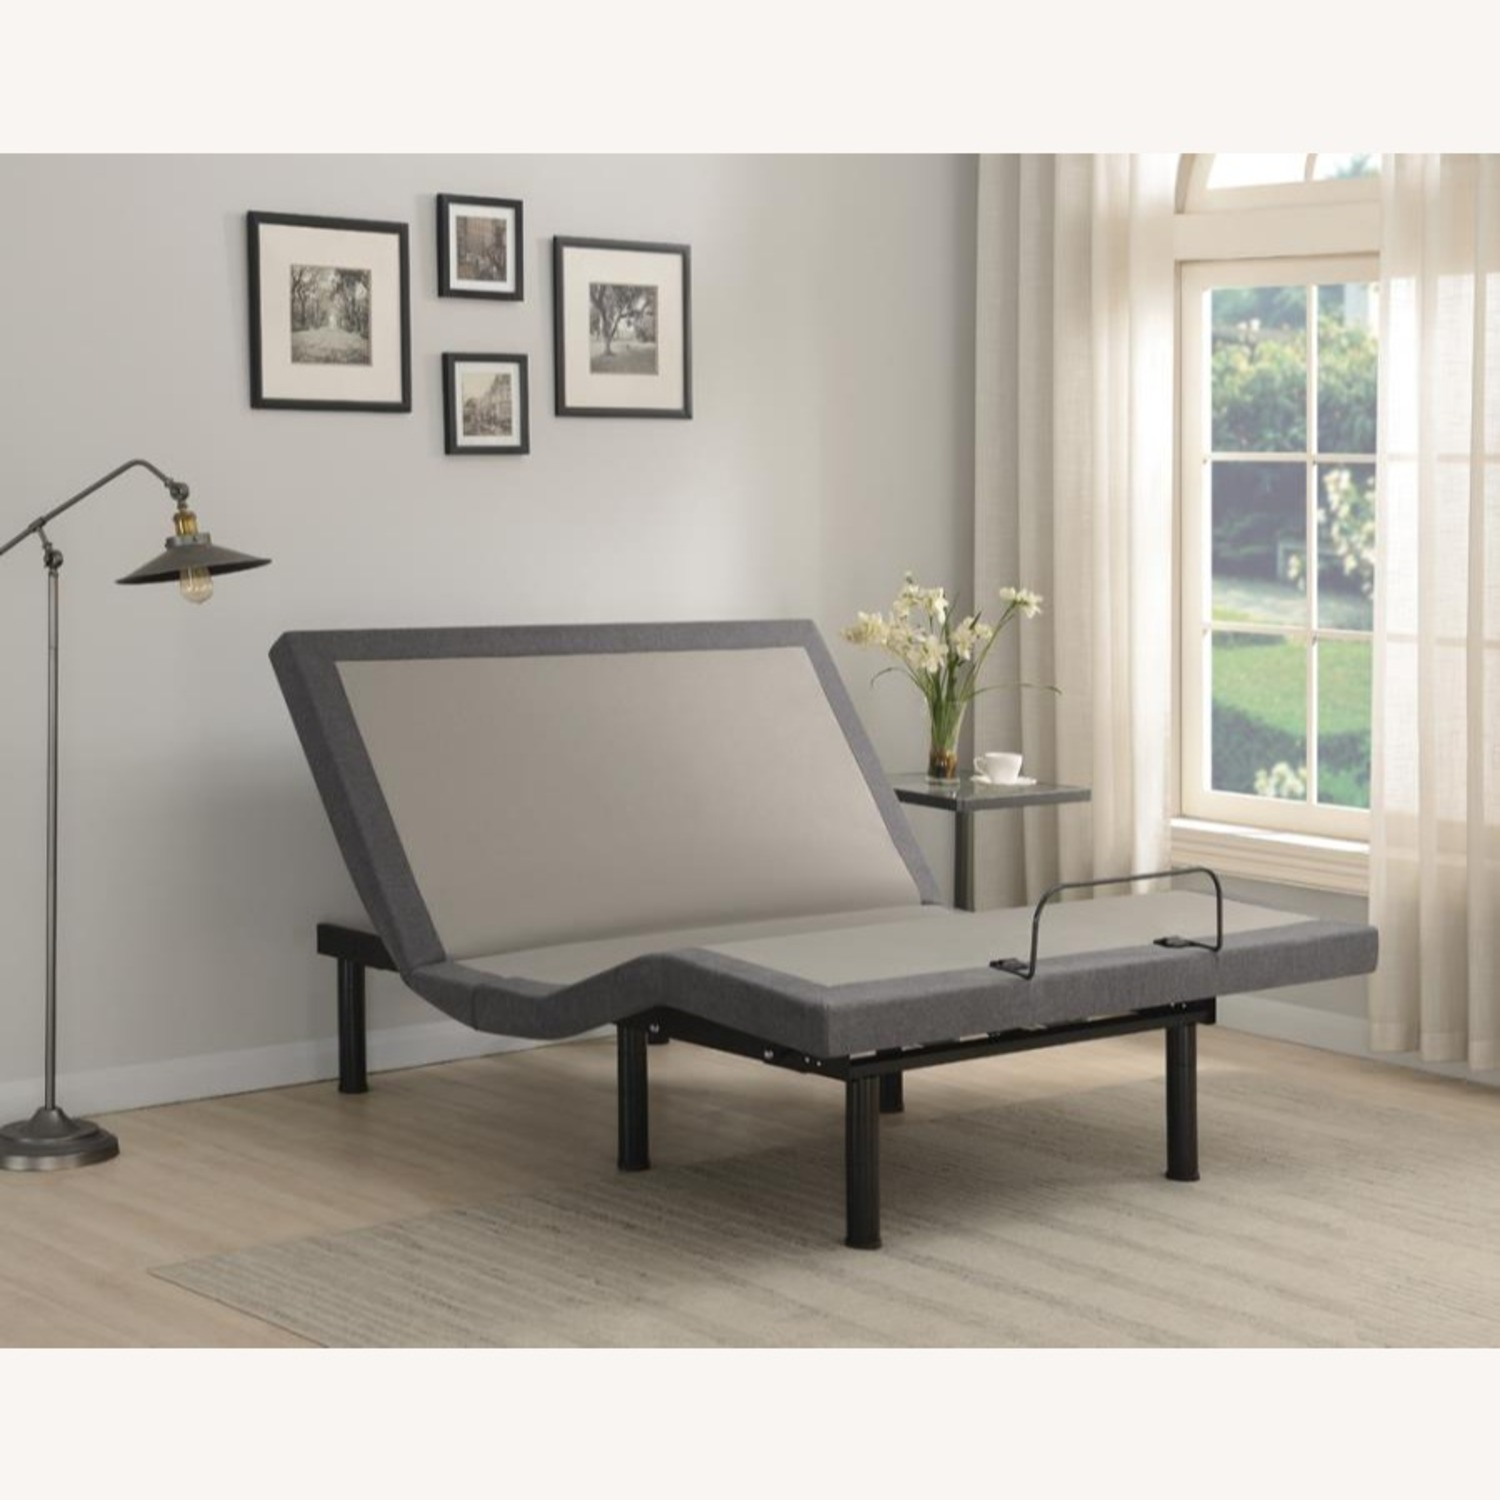 Queen Adjustable Bed Base In Grey Fabric Finish - image-14